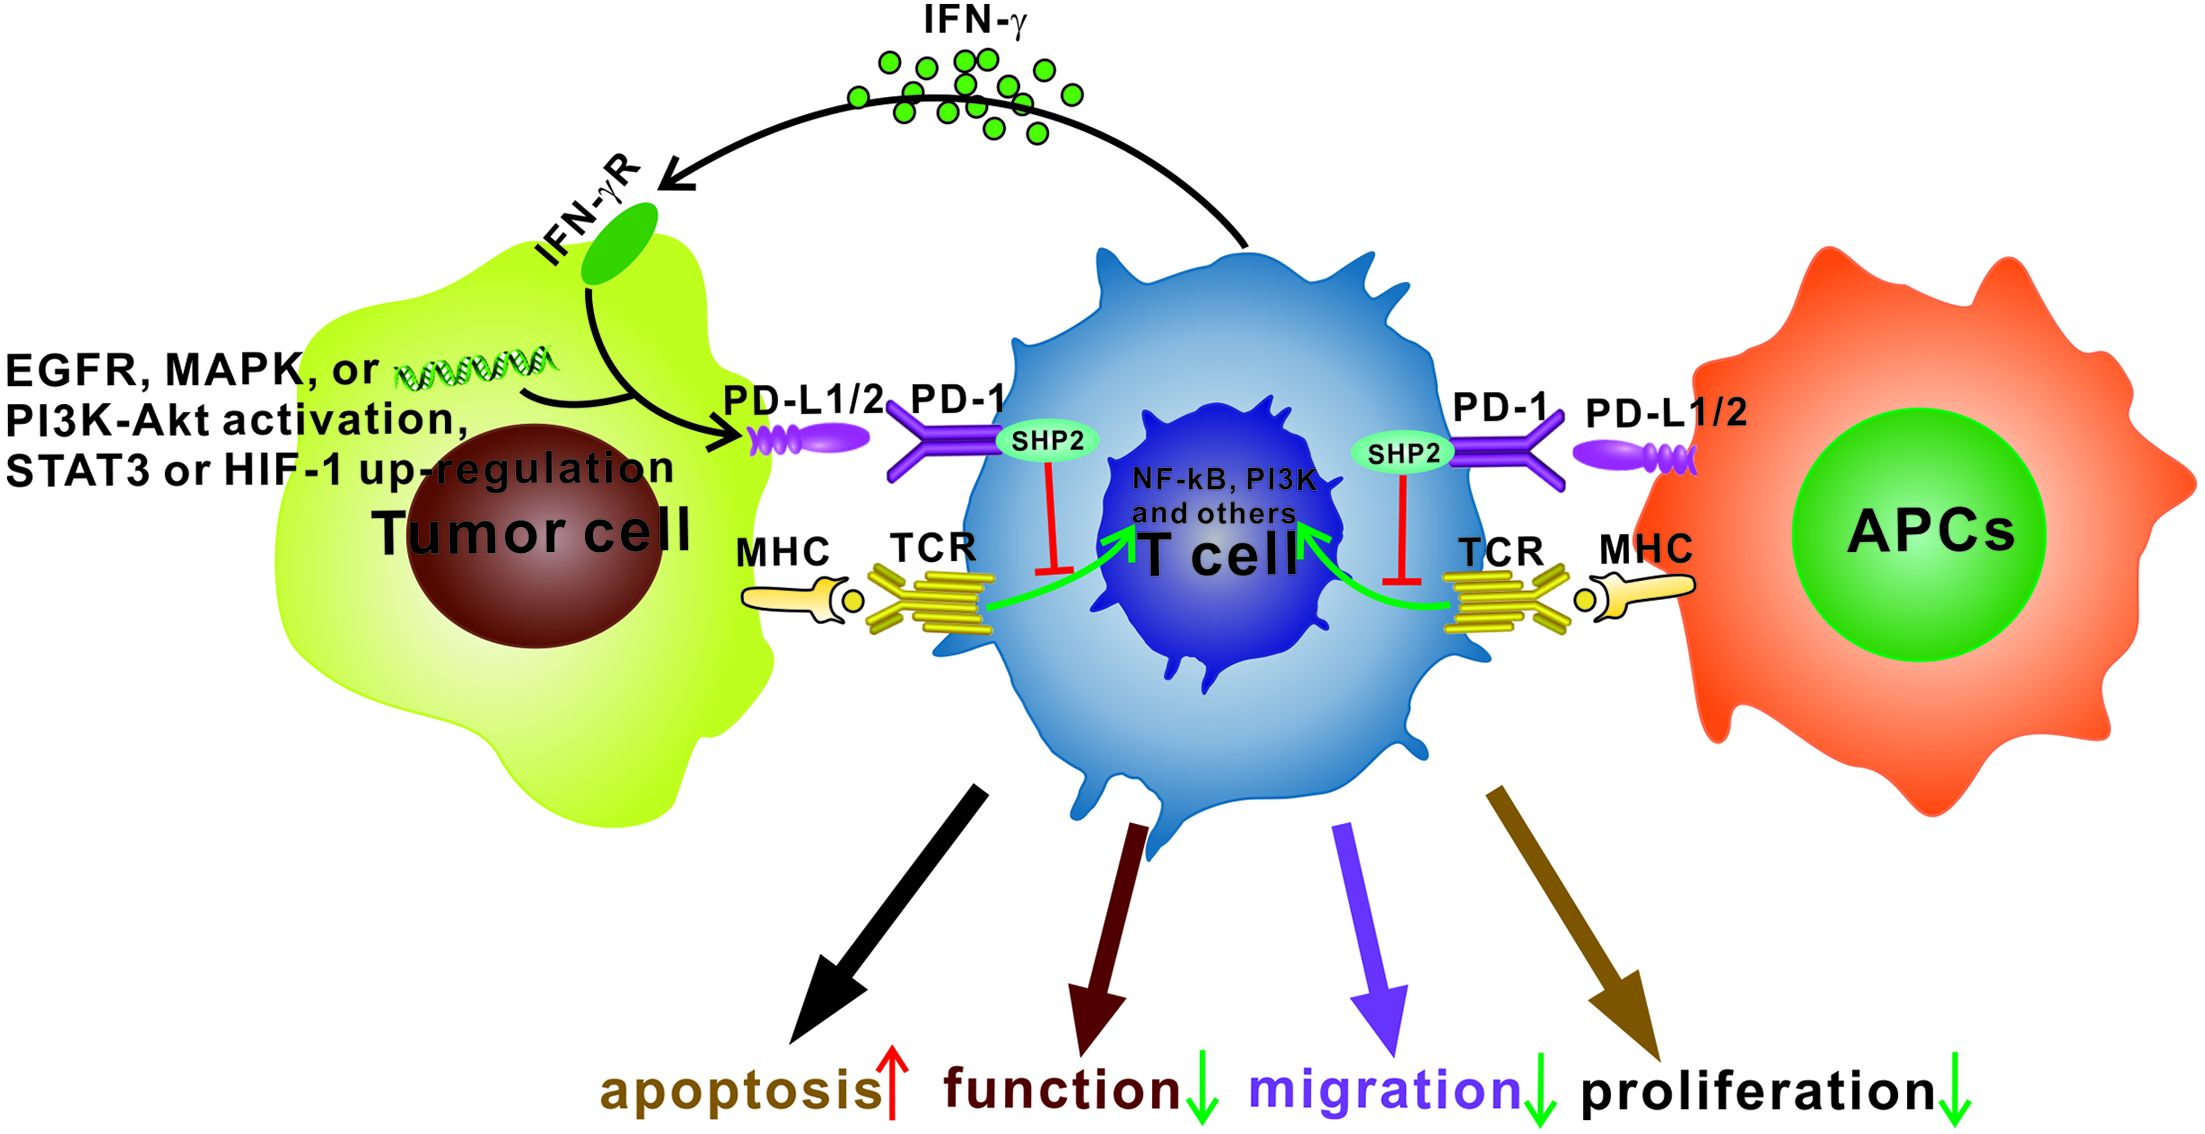 Future of anti-PD-1/PD-L1 applications: Combinations with